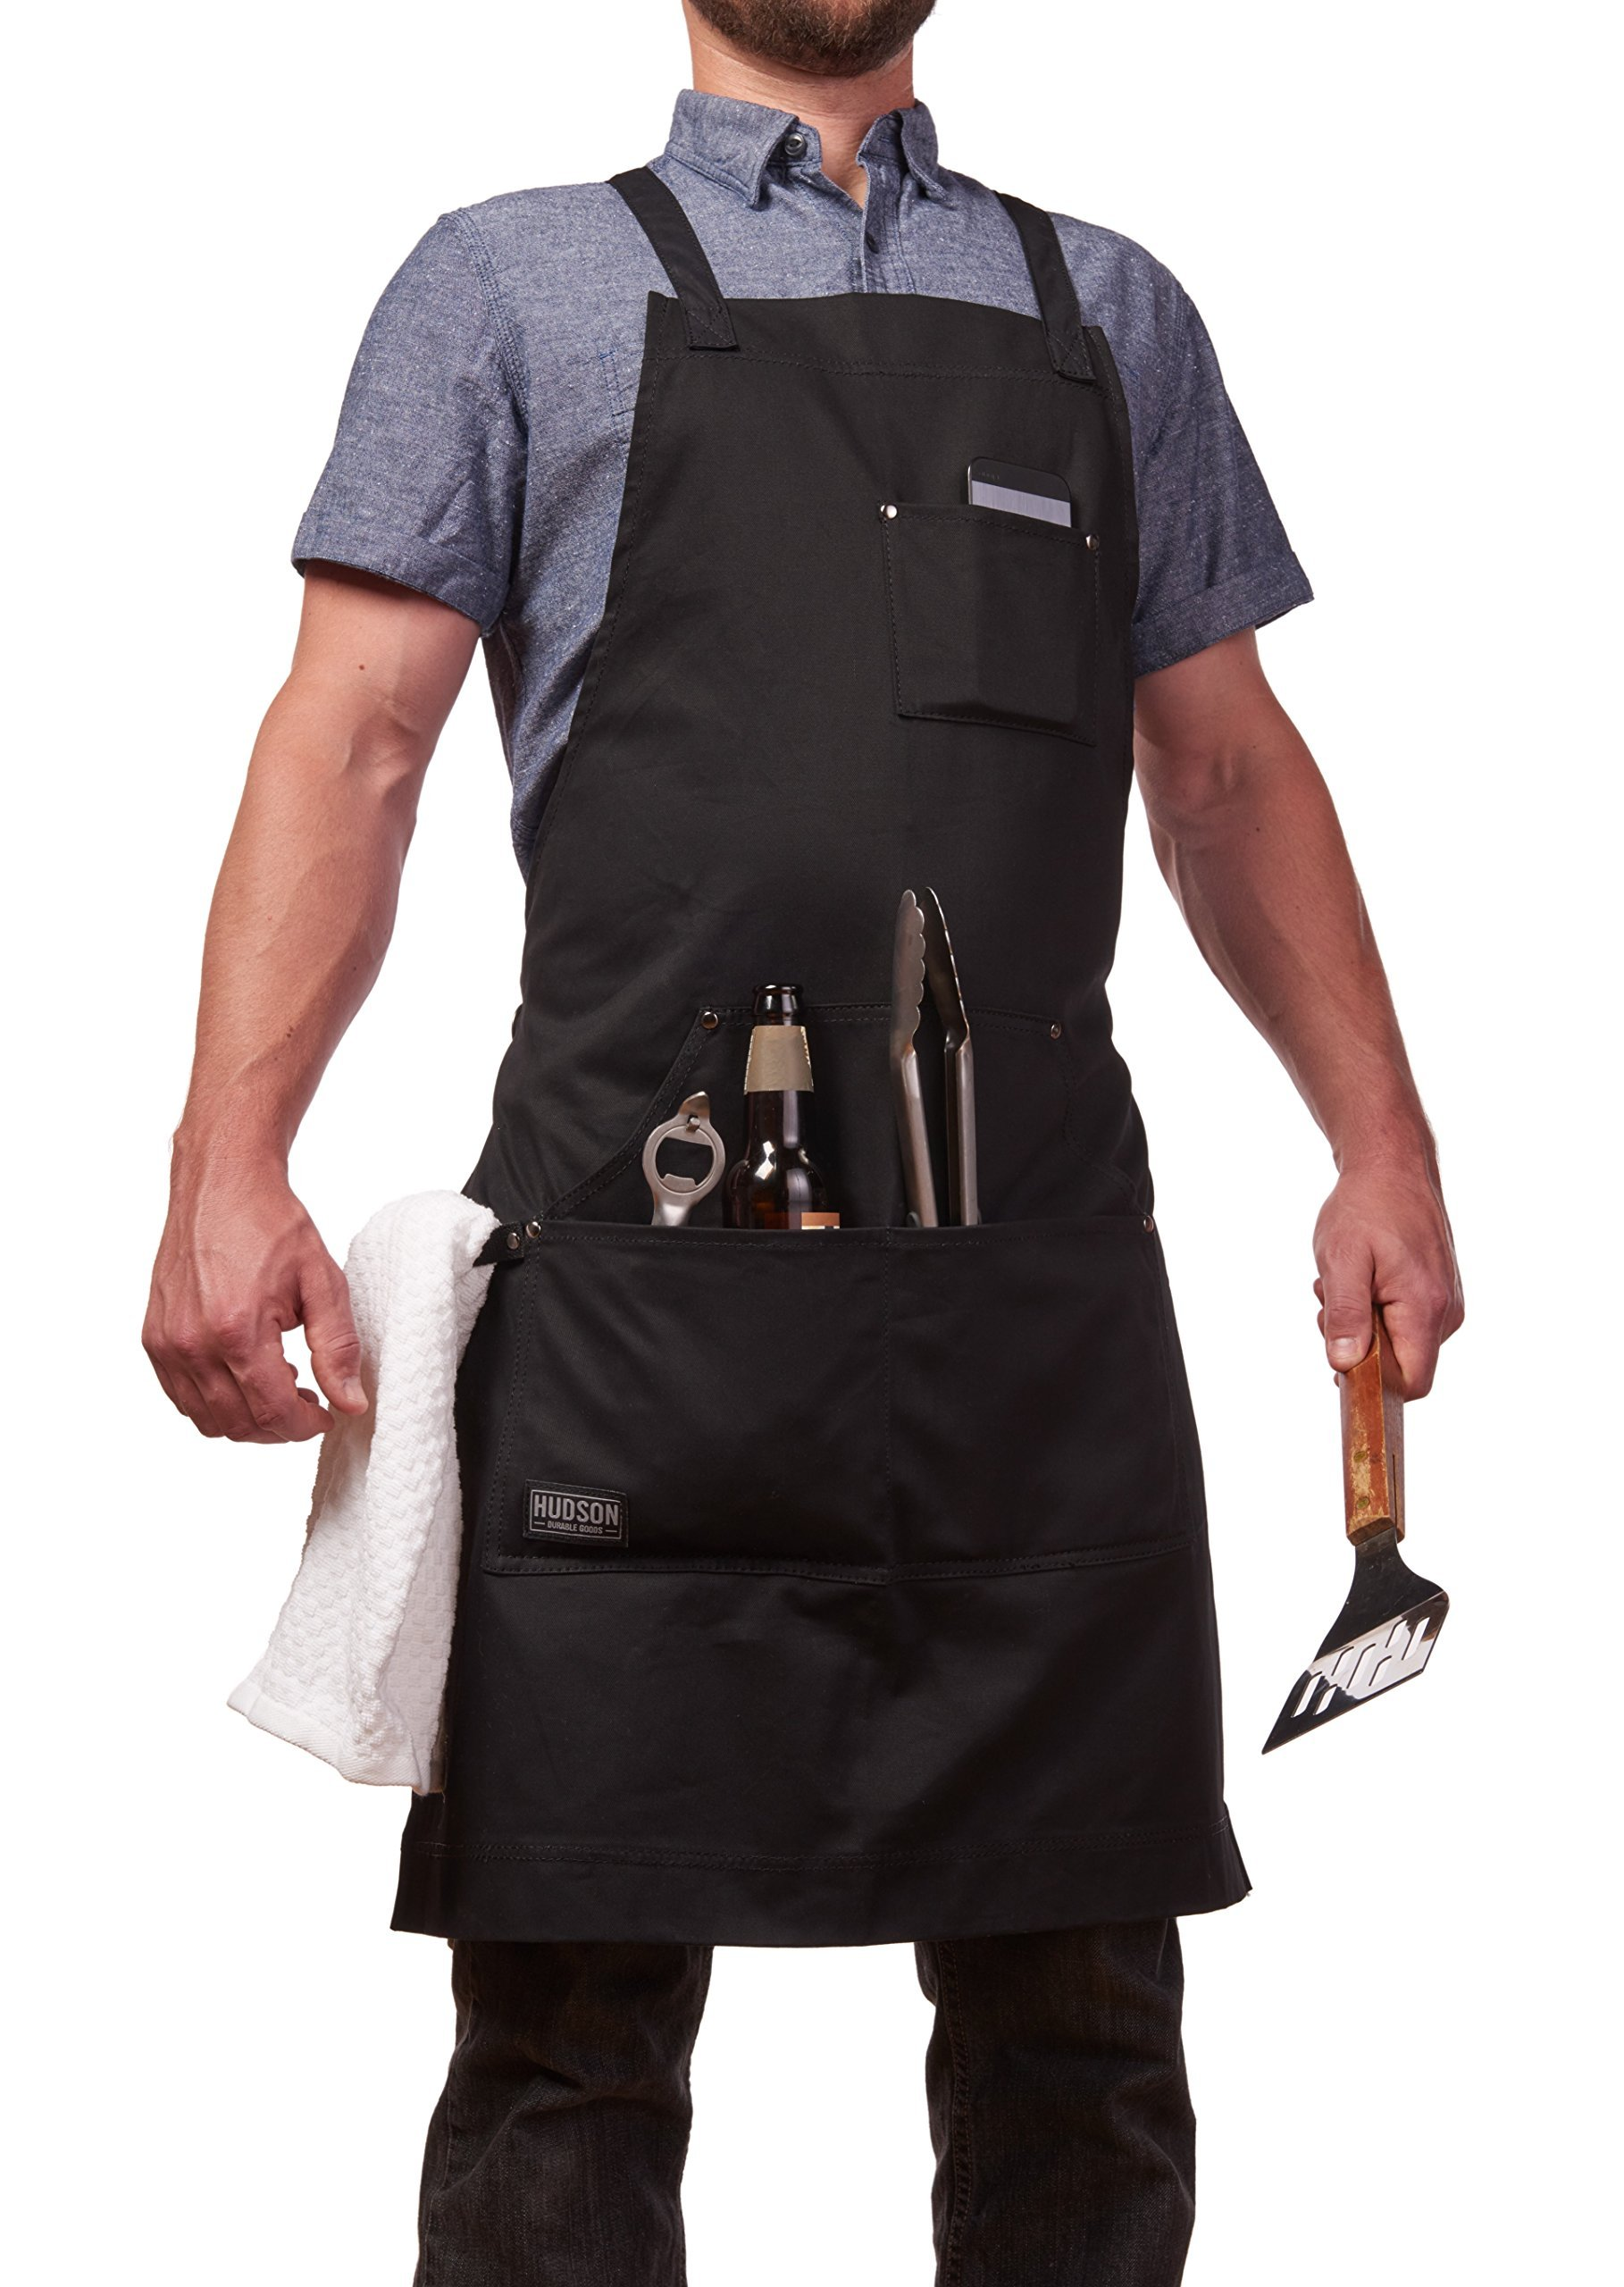 Hudson Durable Goods - Professional Grade Chef Apron for Kitchen, BBQ, and Grill (Black) with Towel Loop + Tool Pockets + Quick Release Buckle, Adjustable M to XXL by Hudson Durable Goods (Image #2)